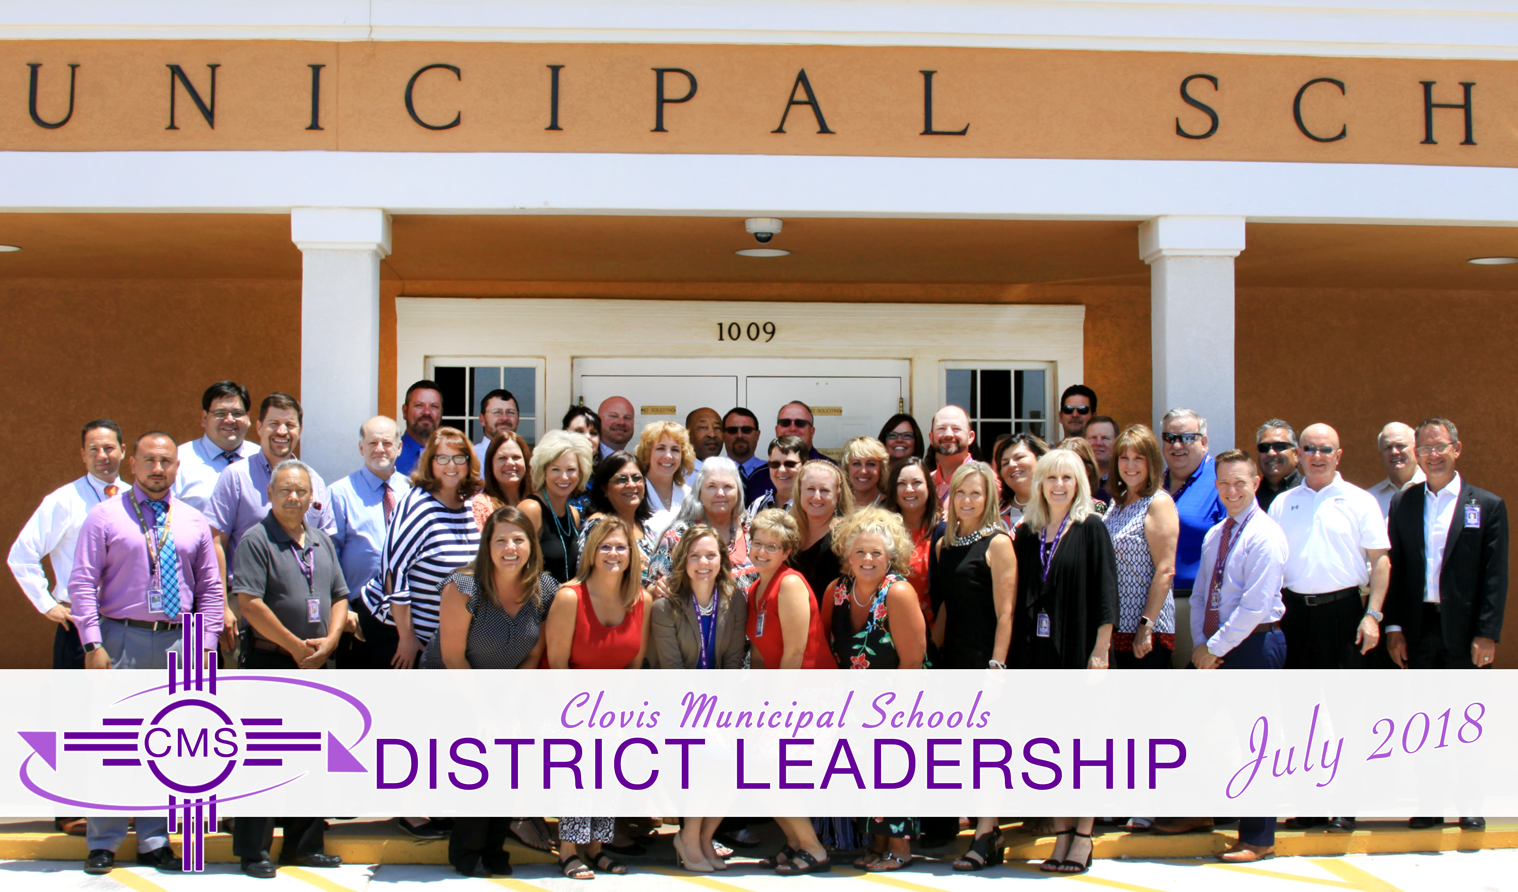 Image with text introducing the district leadership team